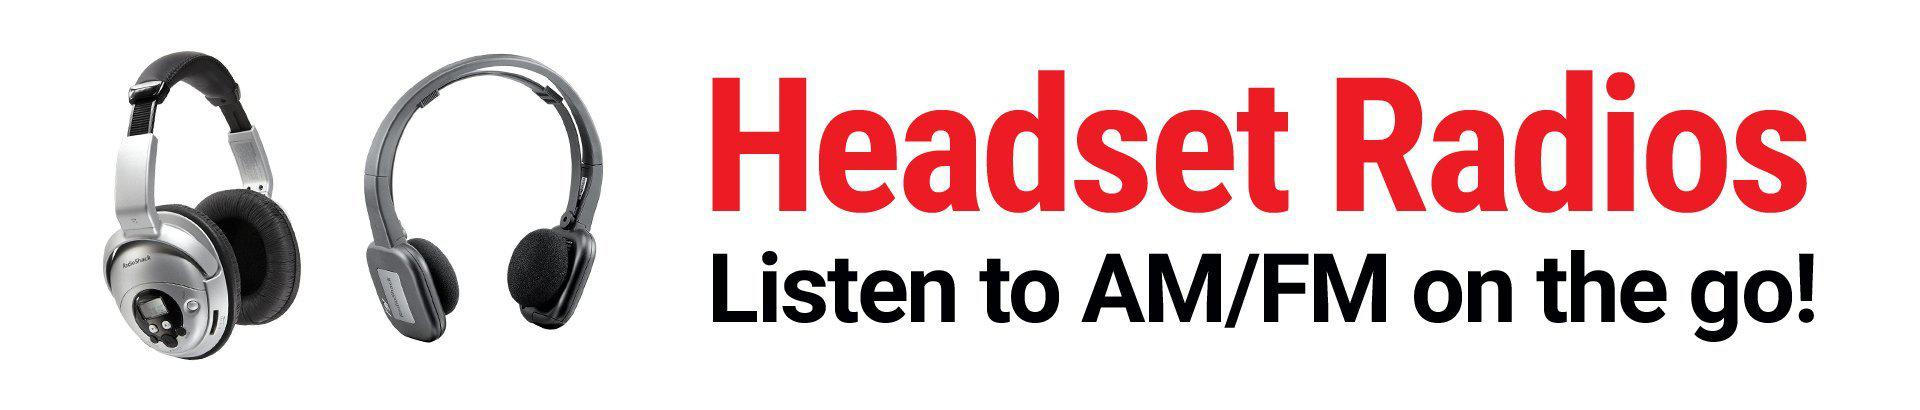 Headset Radios.  Listen to AM/FM on the go!